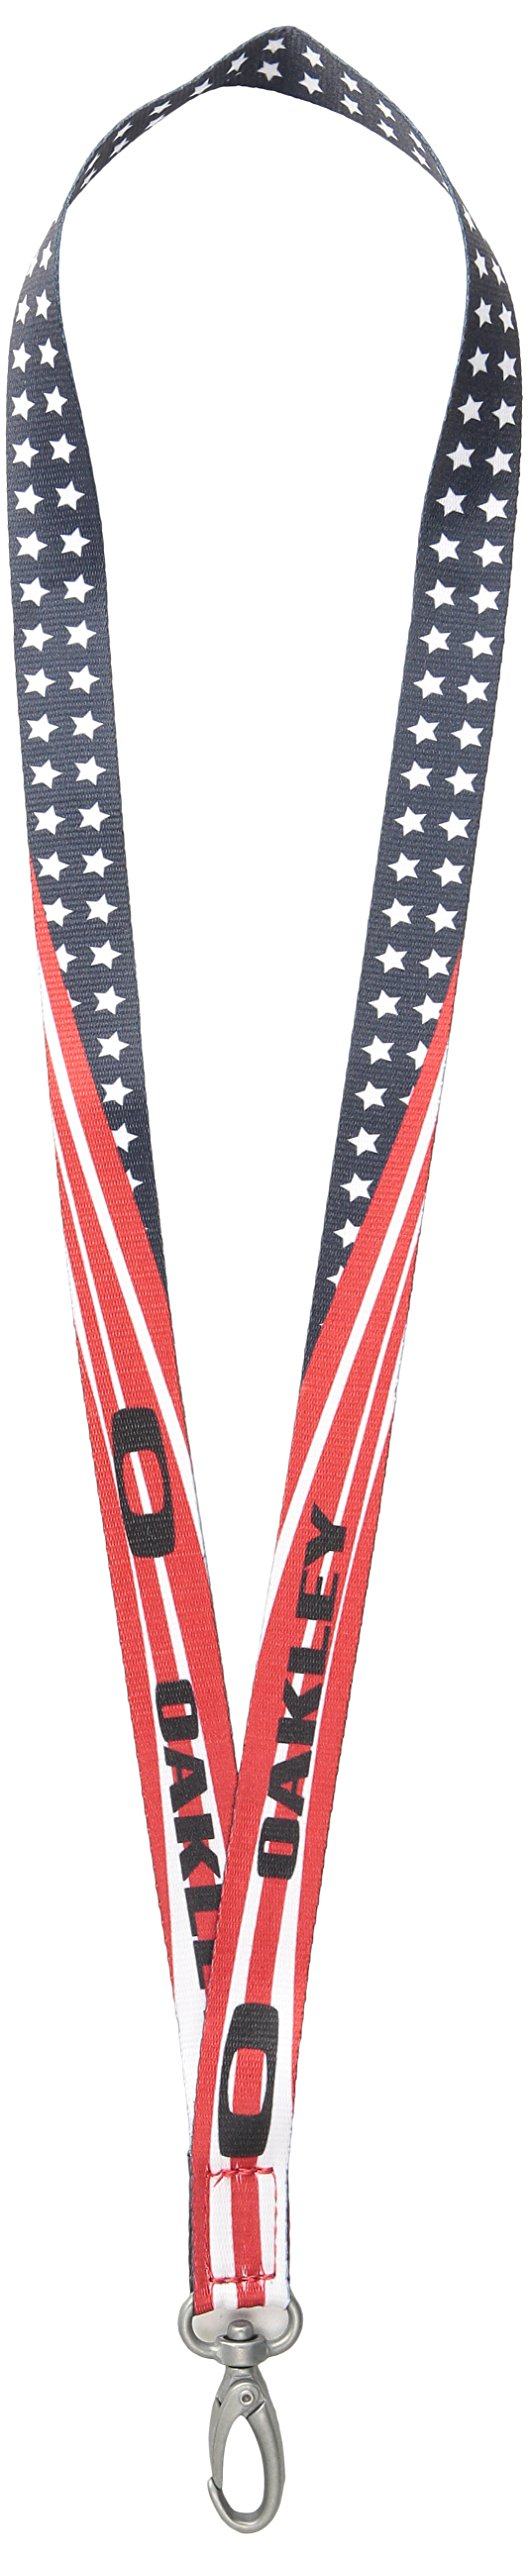 Oakley Men's Square O Lanyard Belt, White/Red, One Size